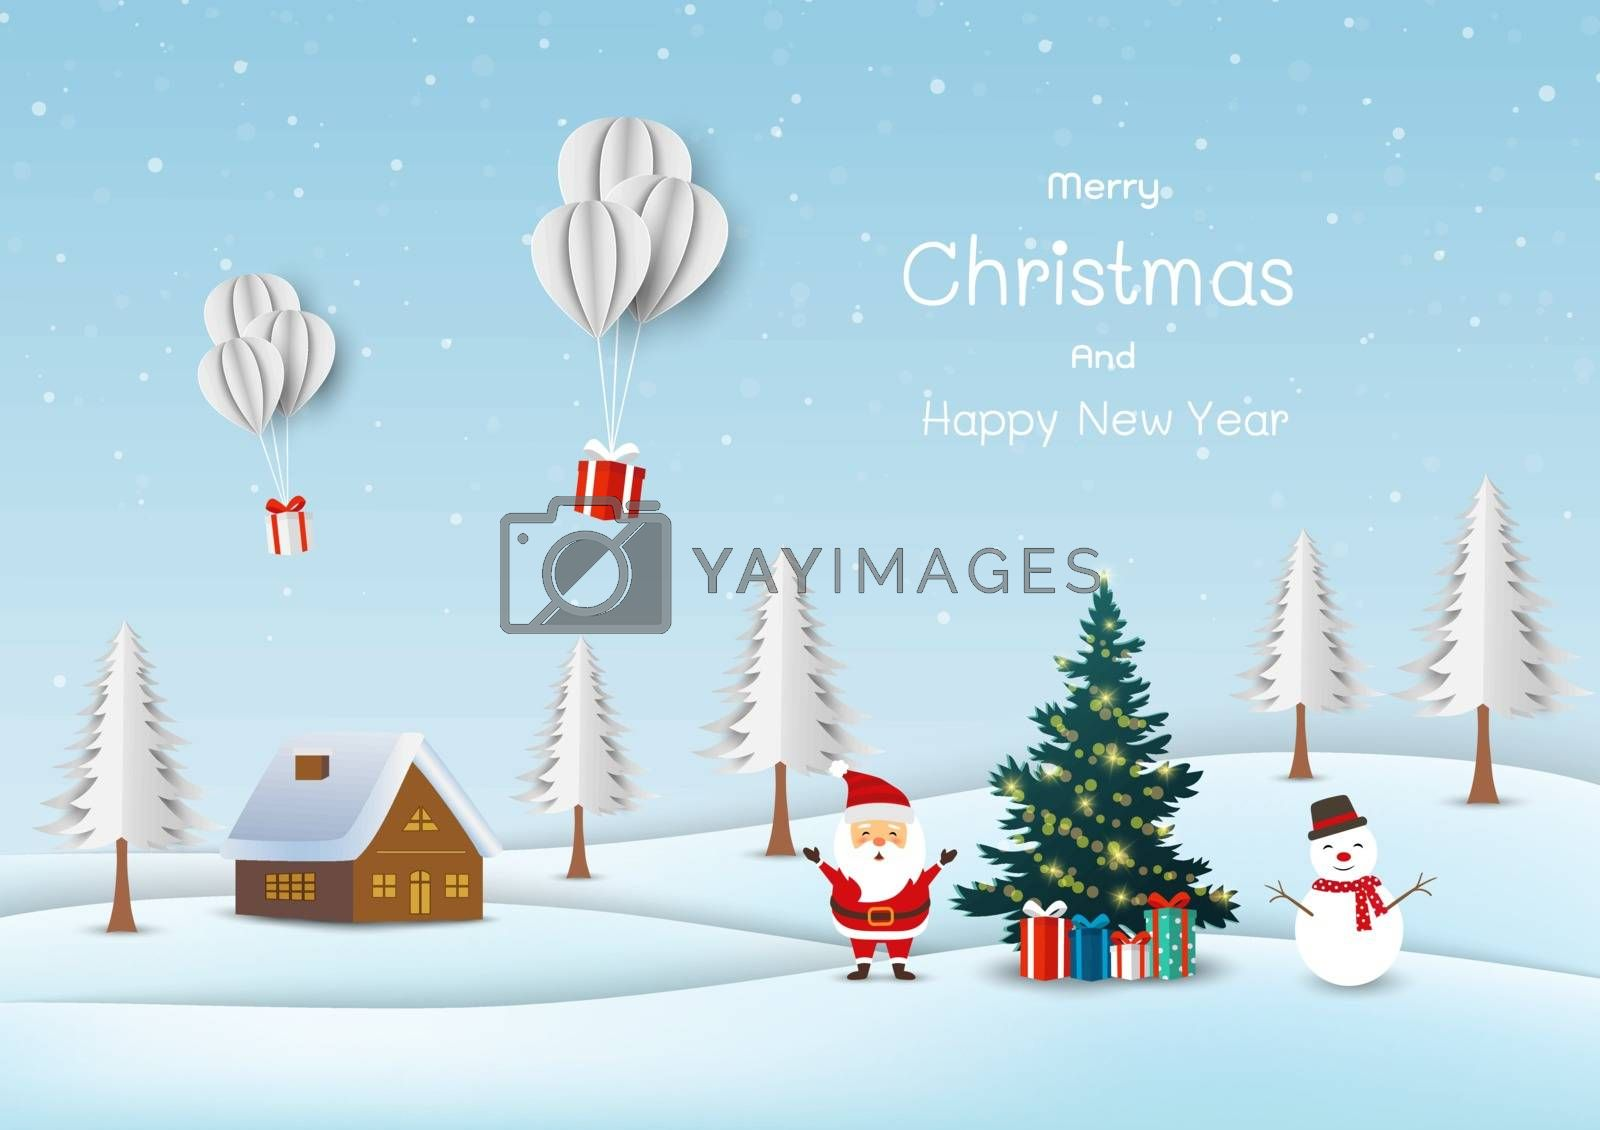 Merry Christmas and happy new year greeting card,cute Santa claus with snowman happy on snow village background by PIMPAKA